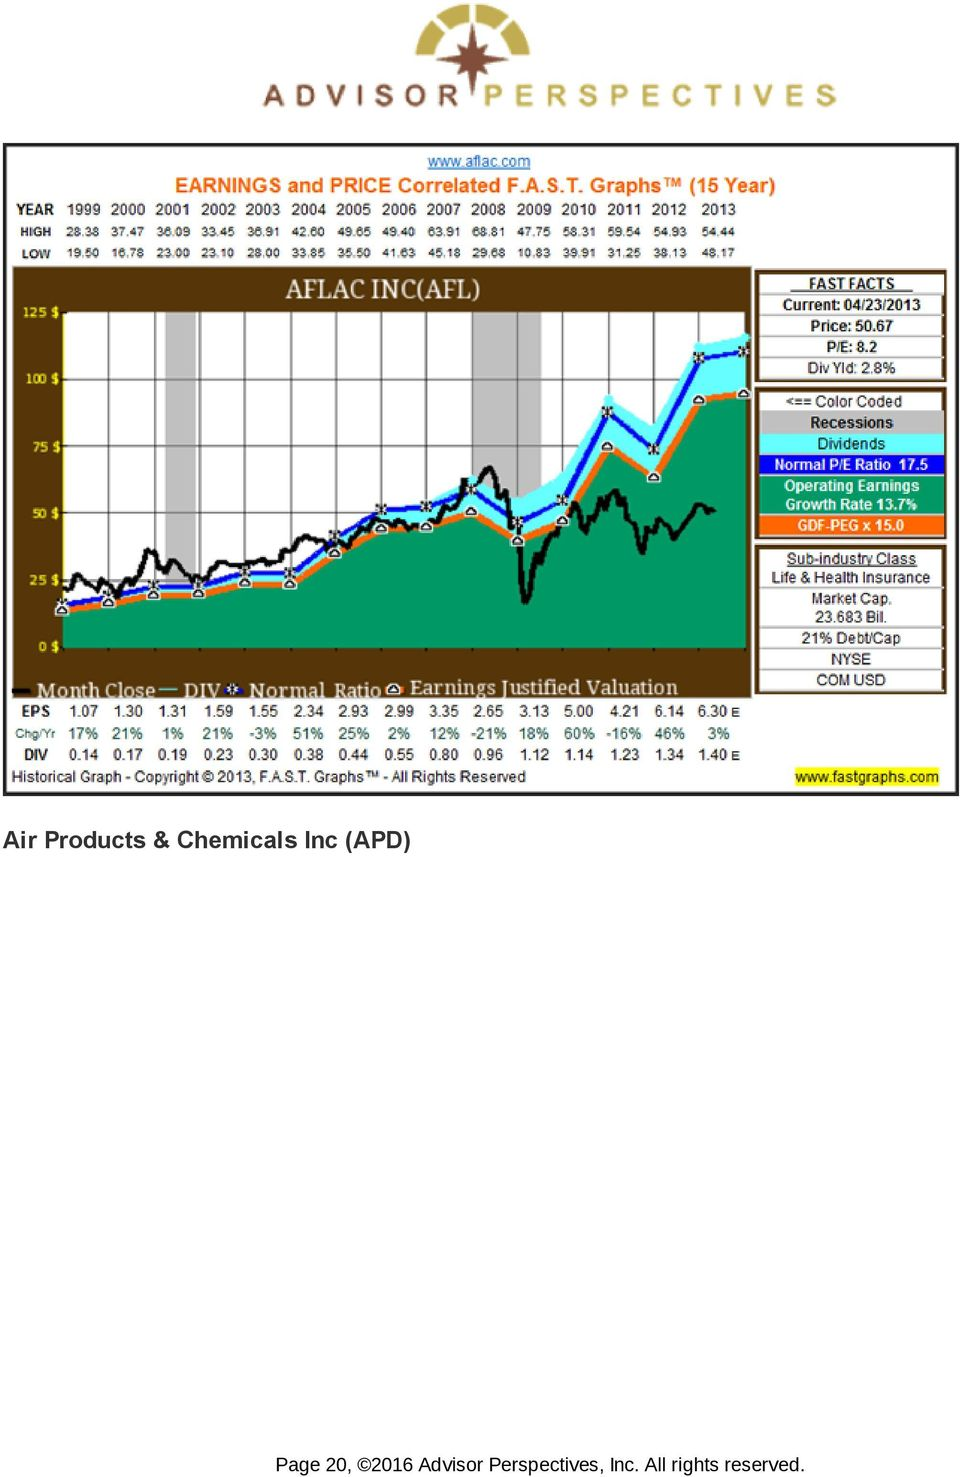 Many Of My Dividend Growth Stocks Have Become Overvalued What Do I